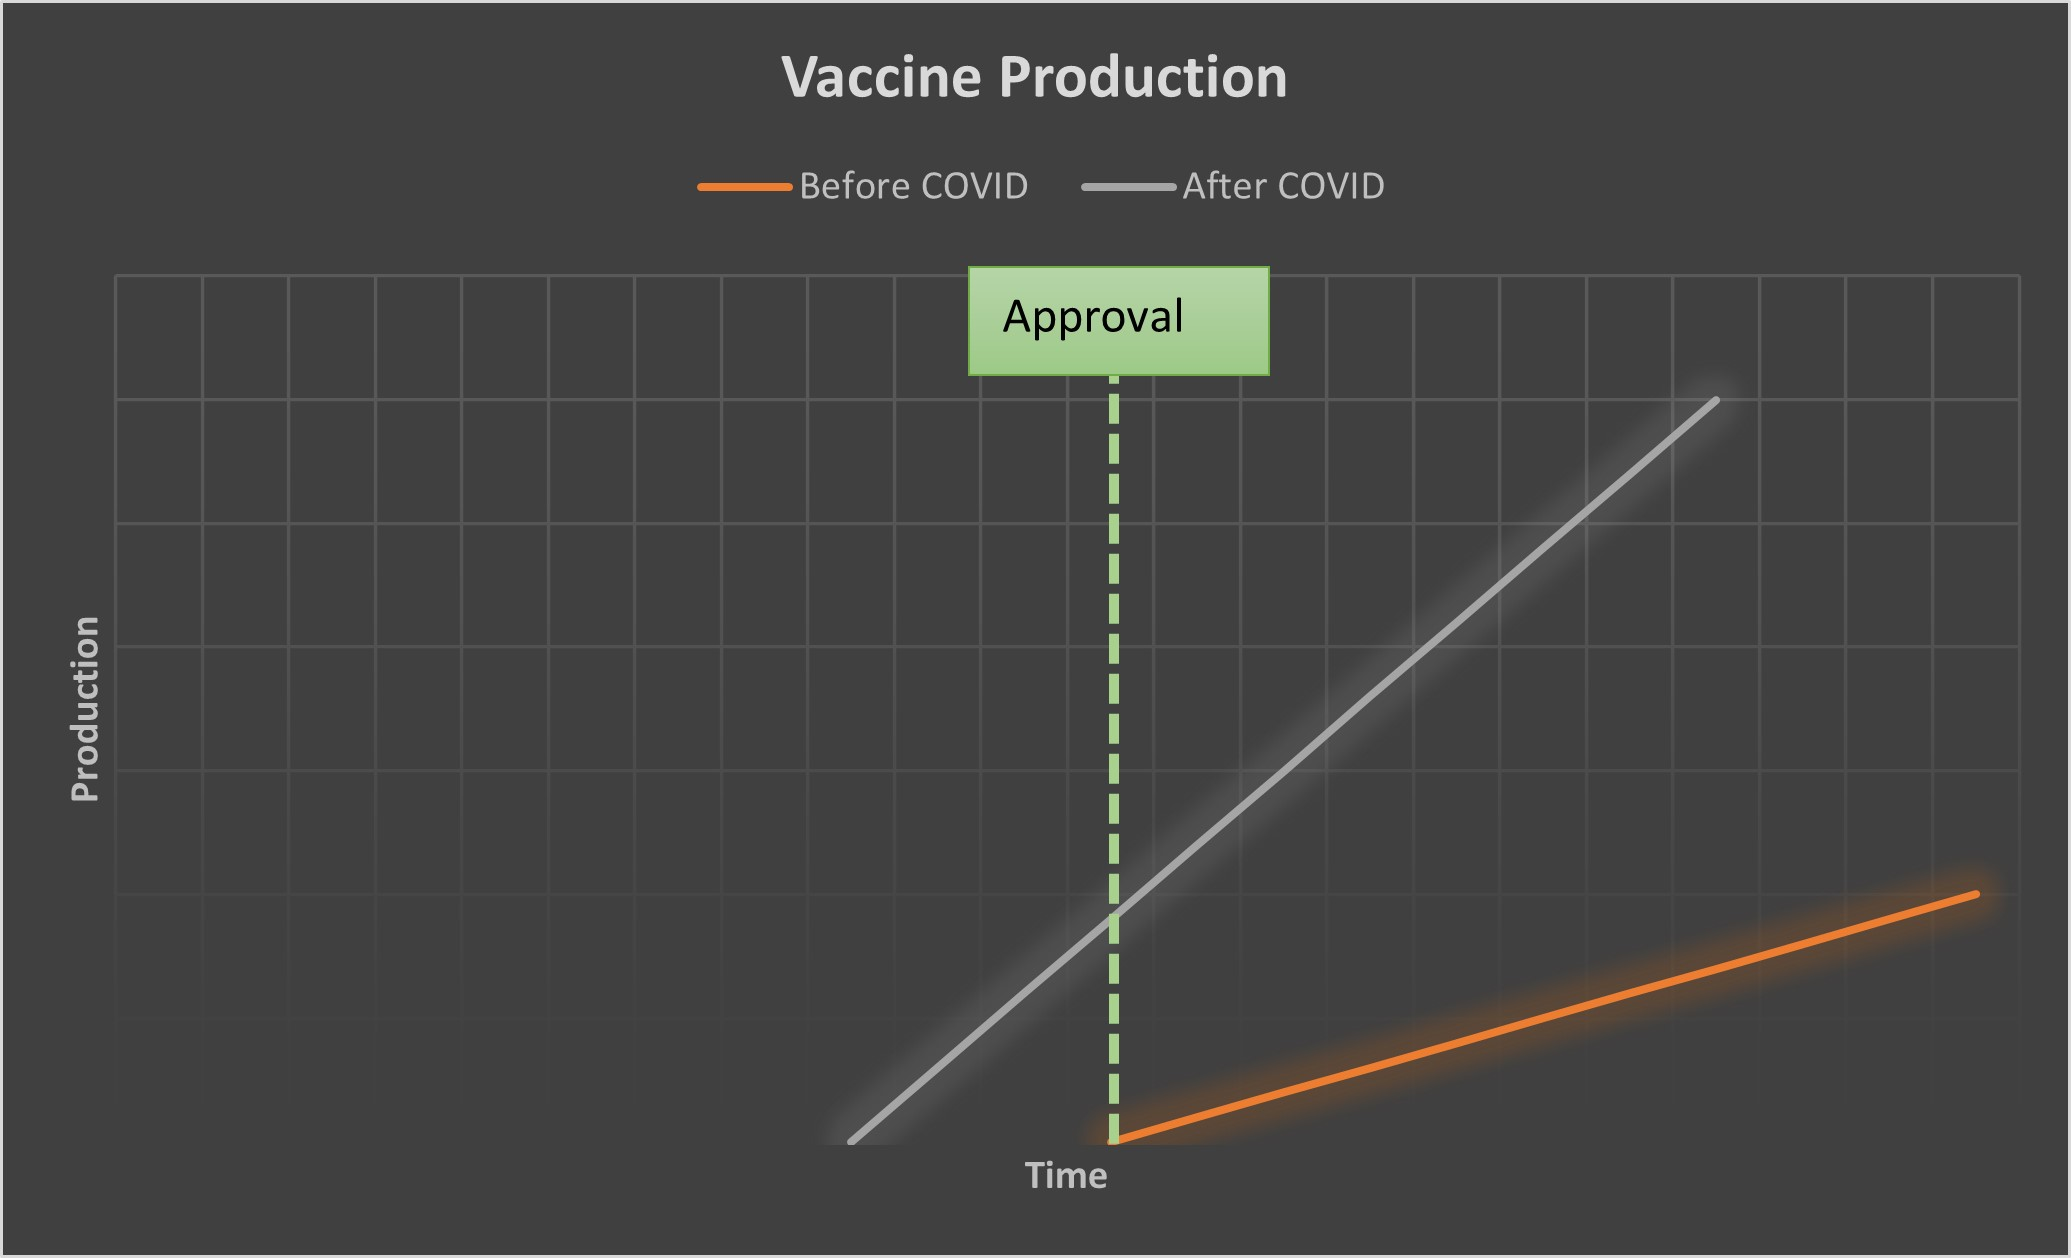 Vaccine production approval graph